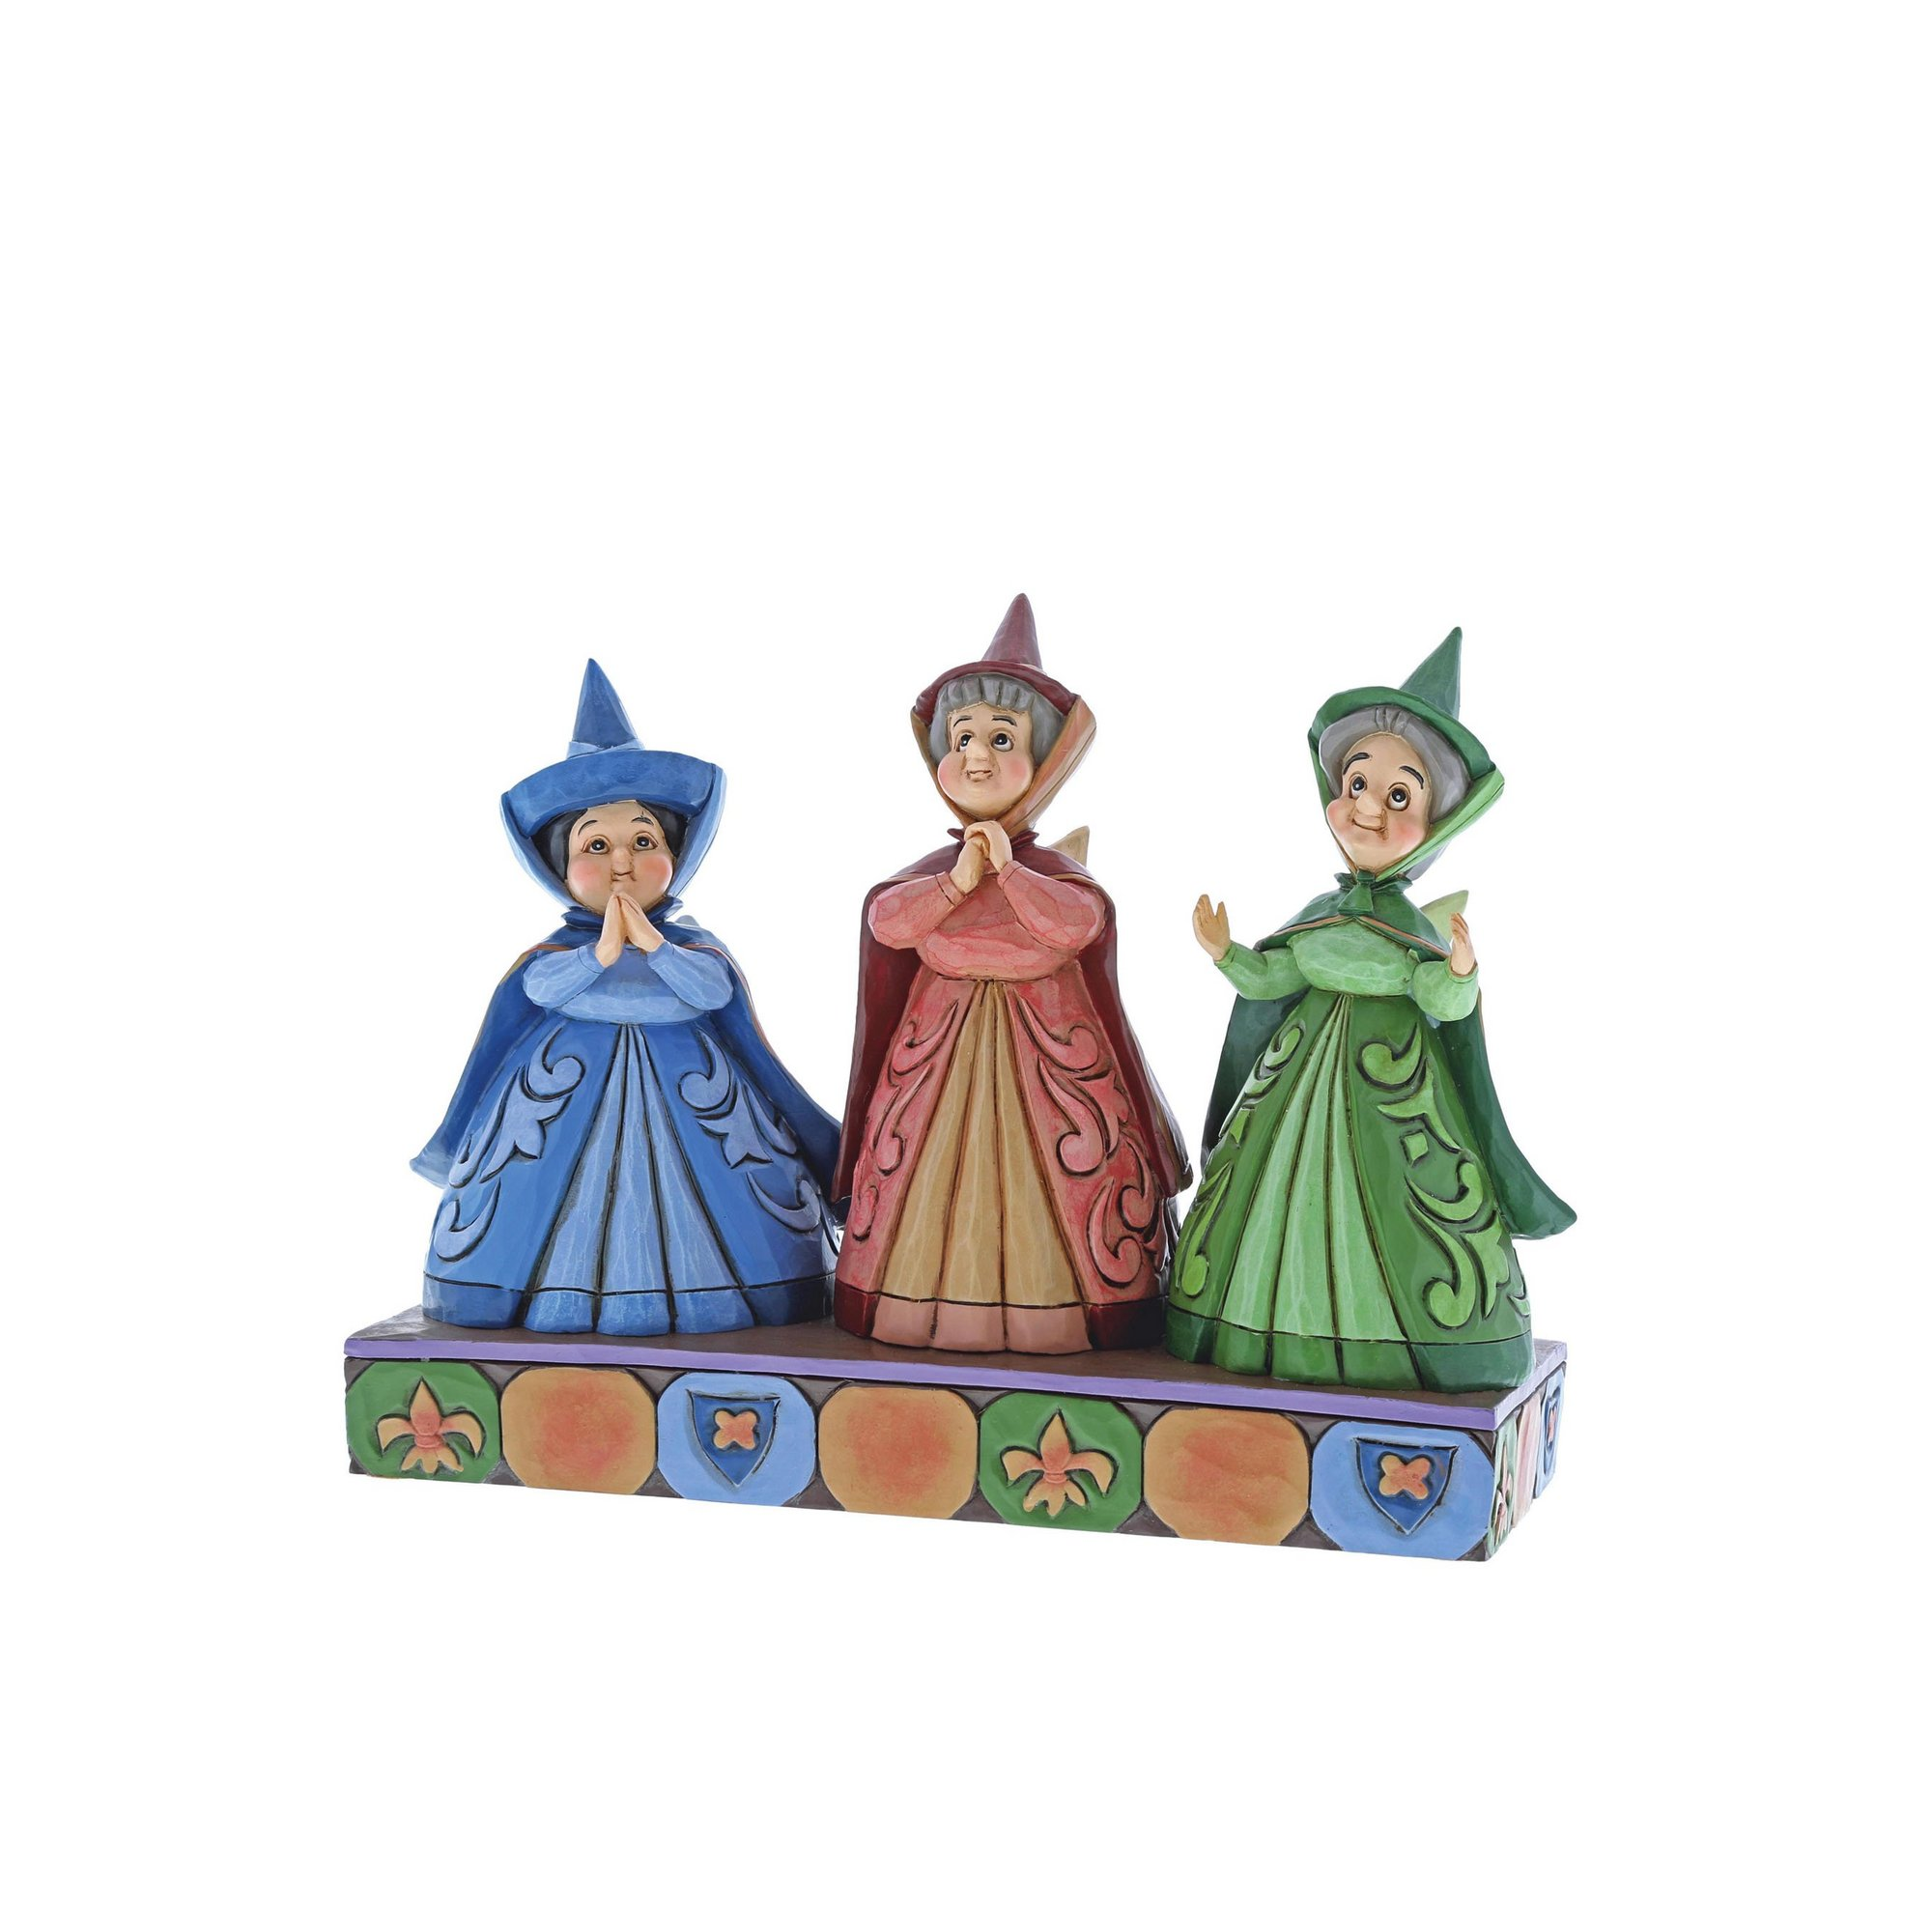 Image of Royal Guests Three Fairies - Disney Traditions